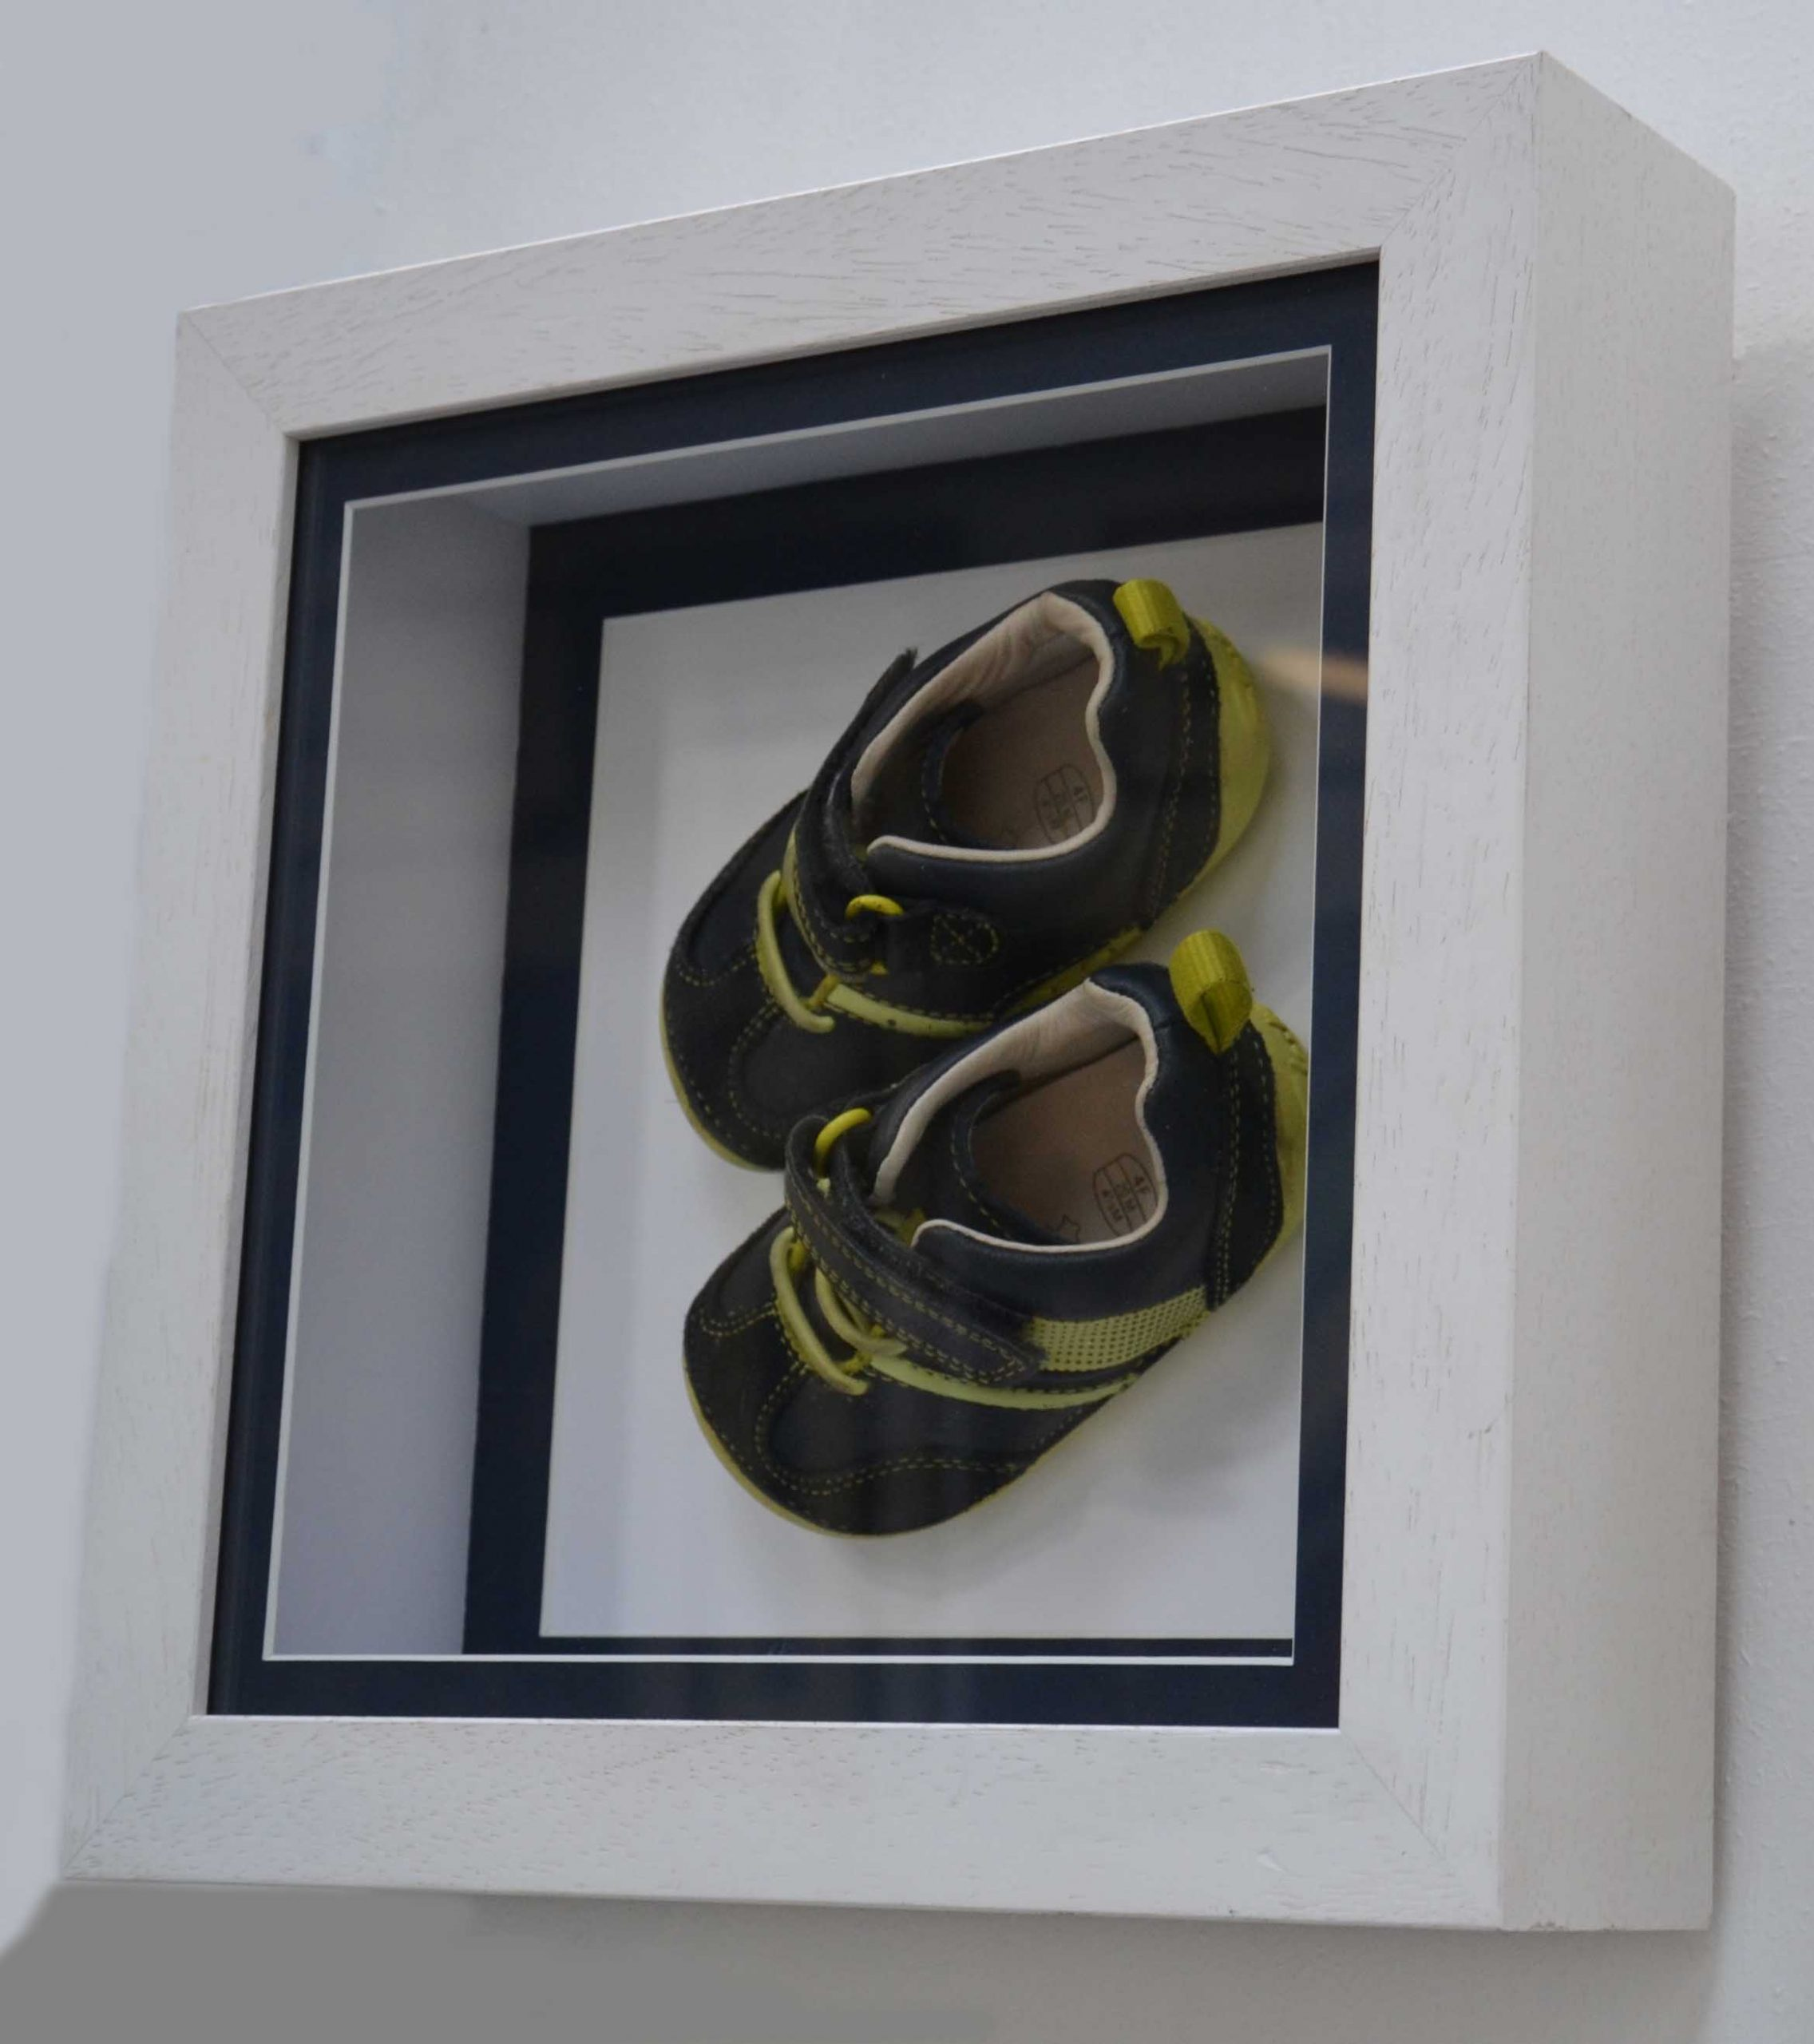 boys baby shoes in frame